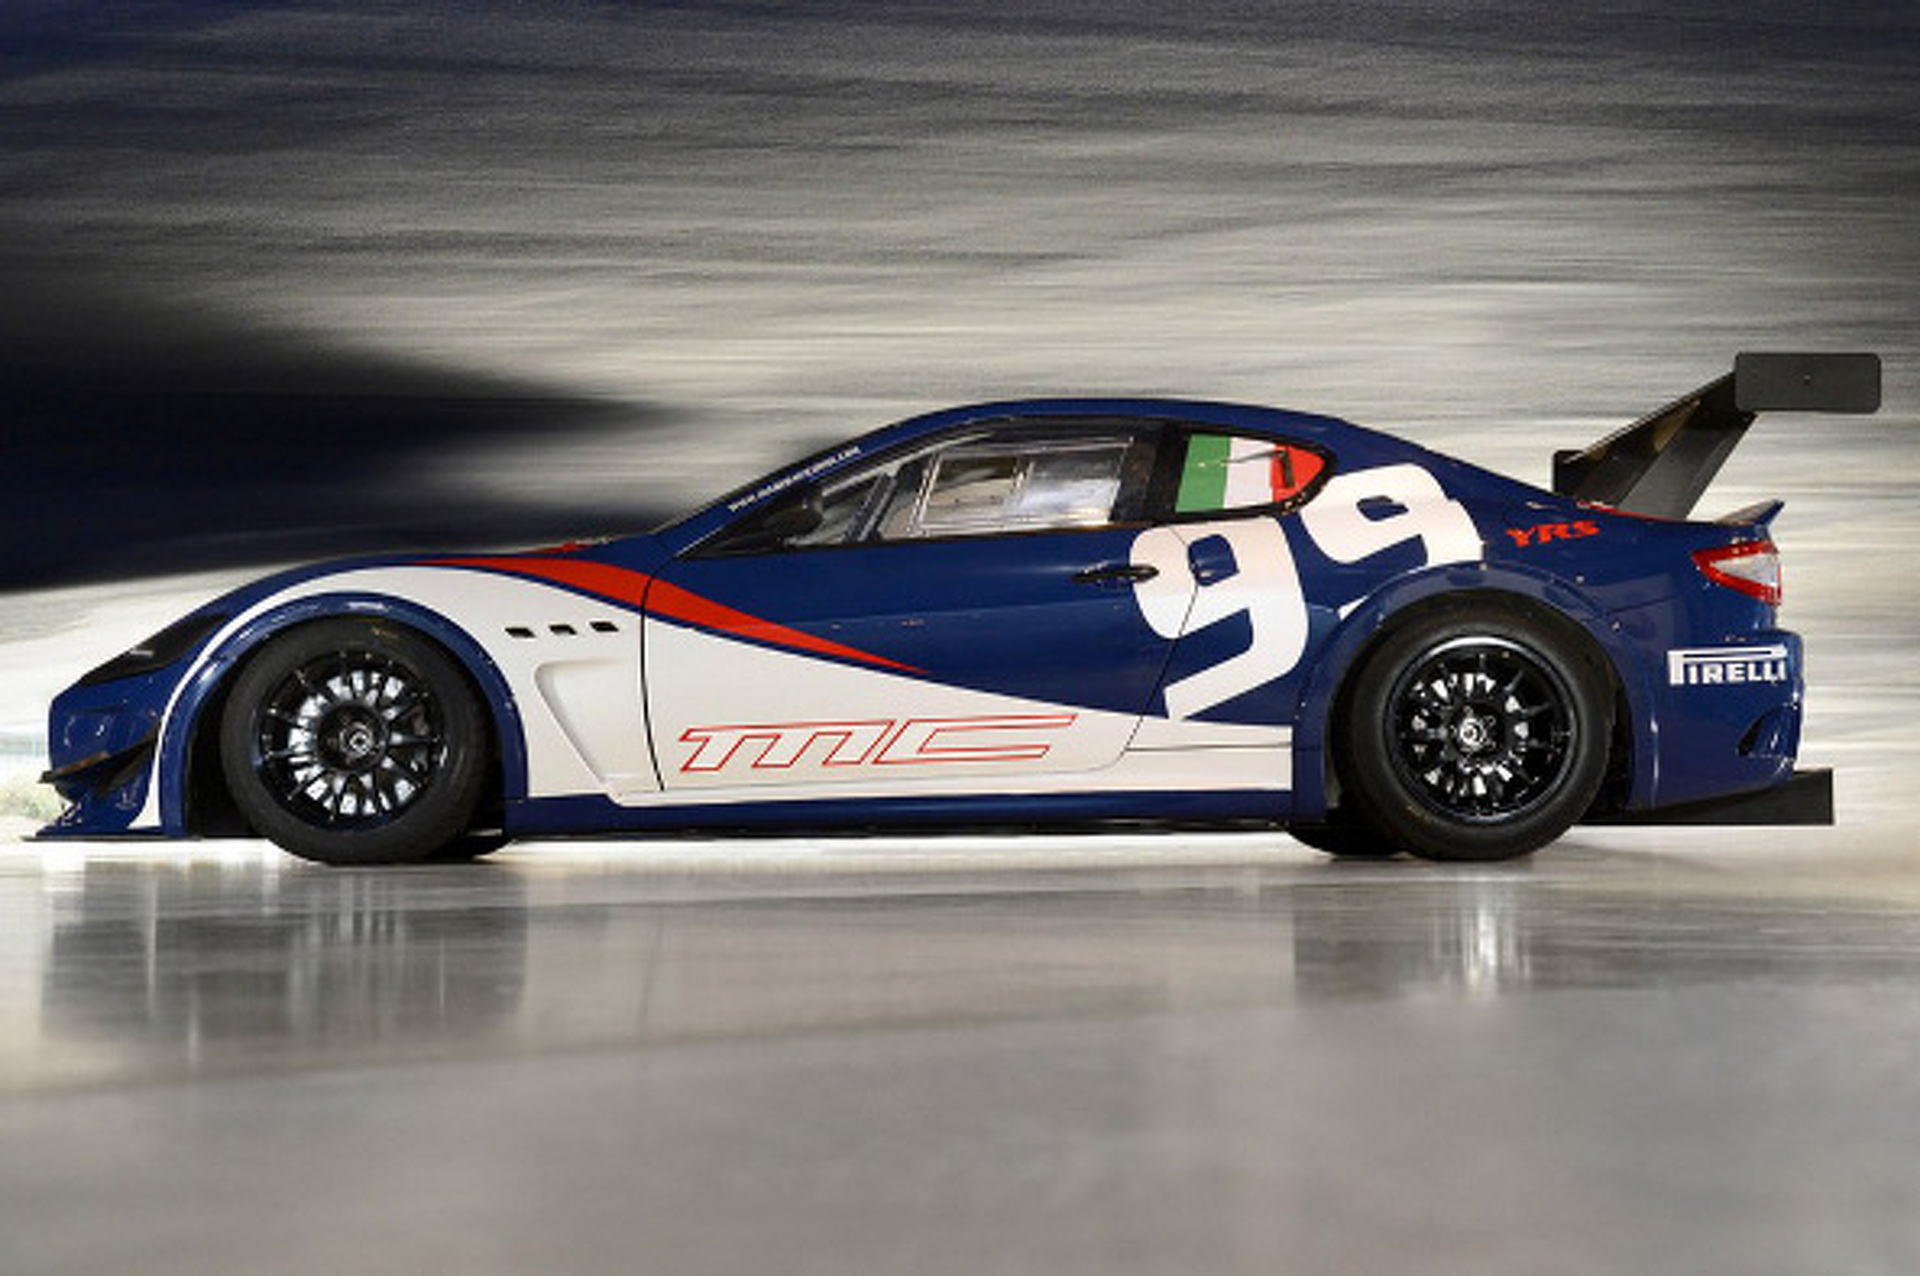 GranTurismo MC Trofeo is How Maserati Does Racing